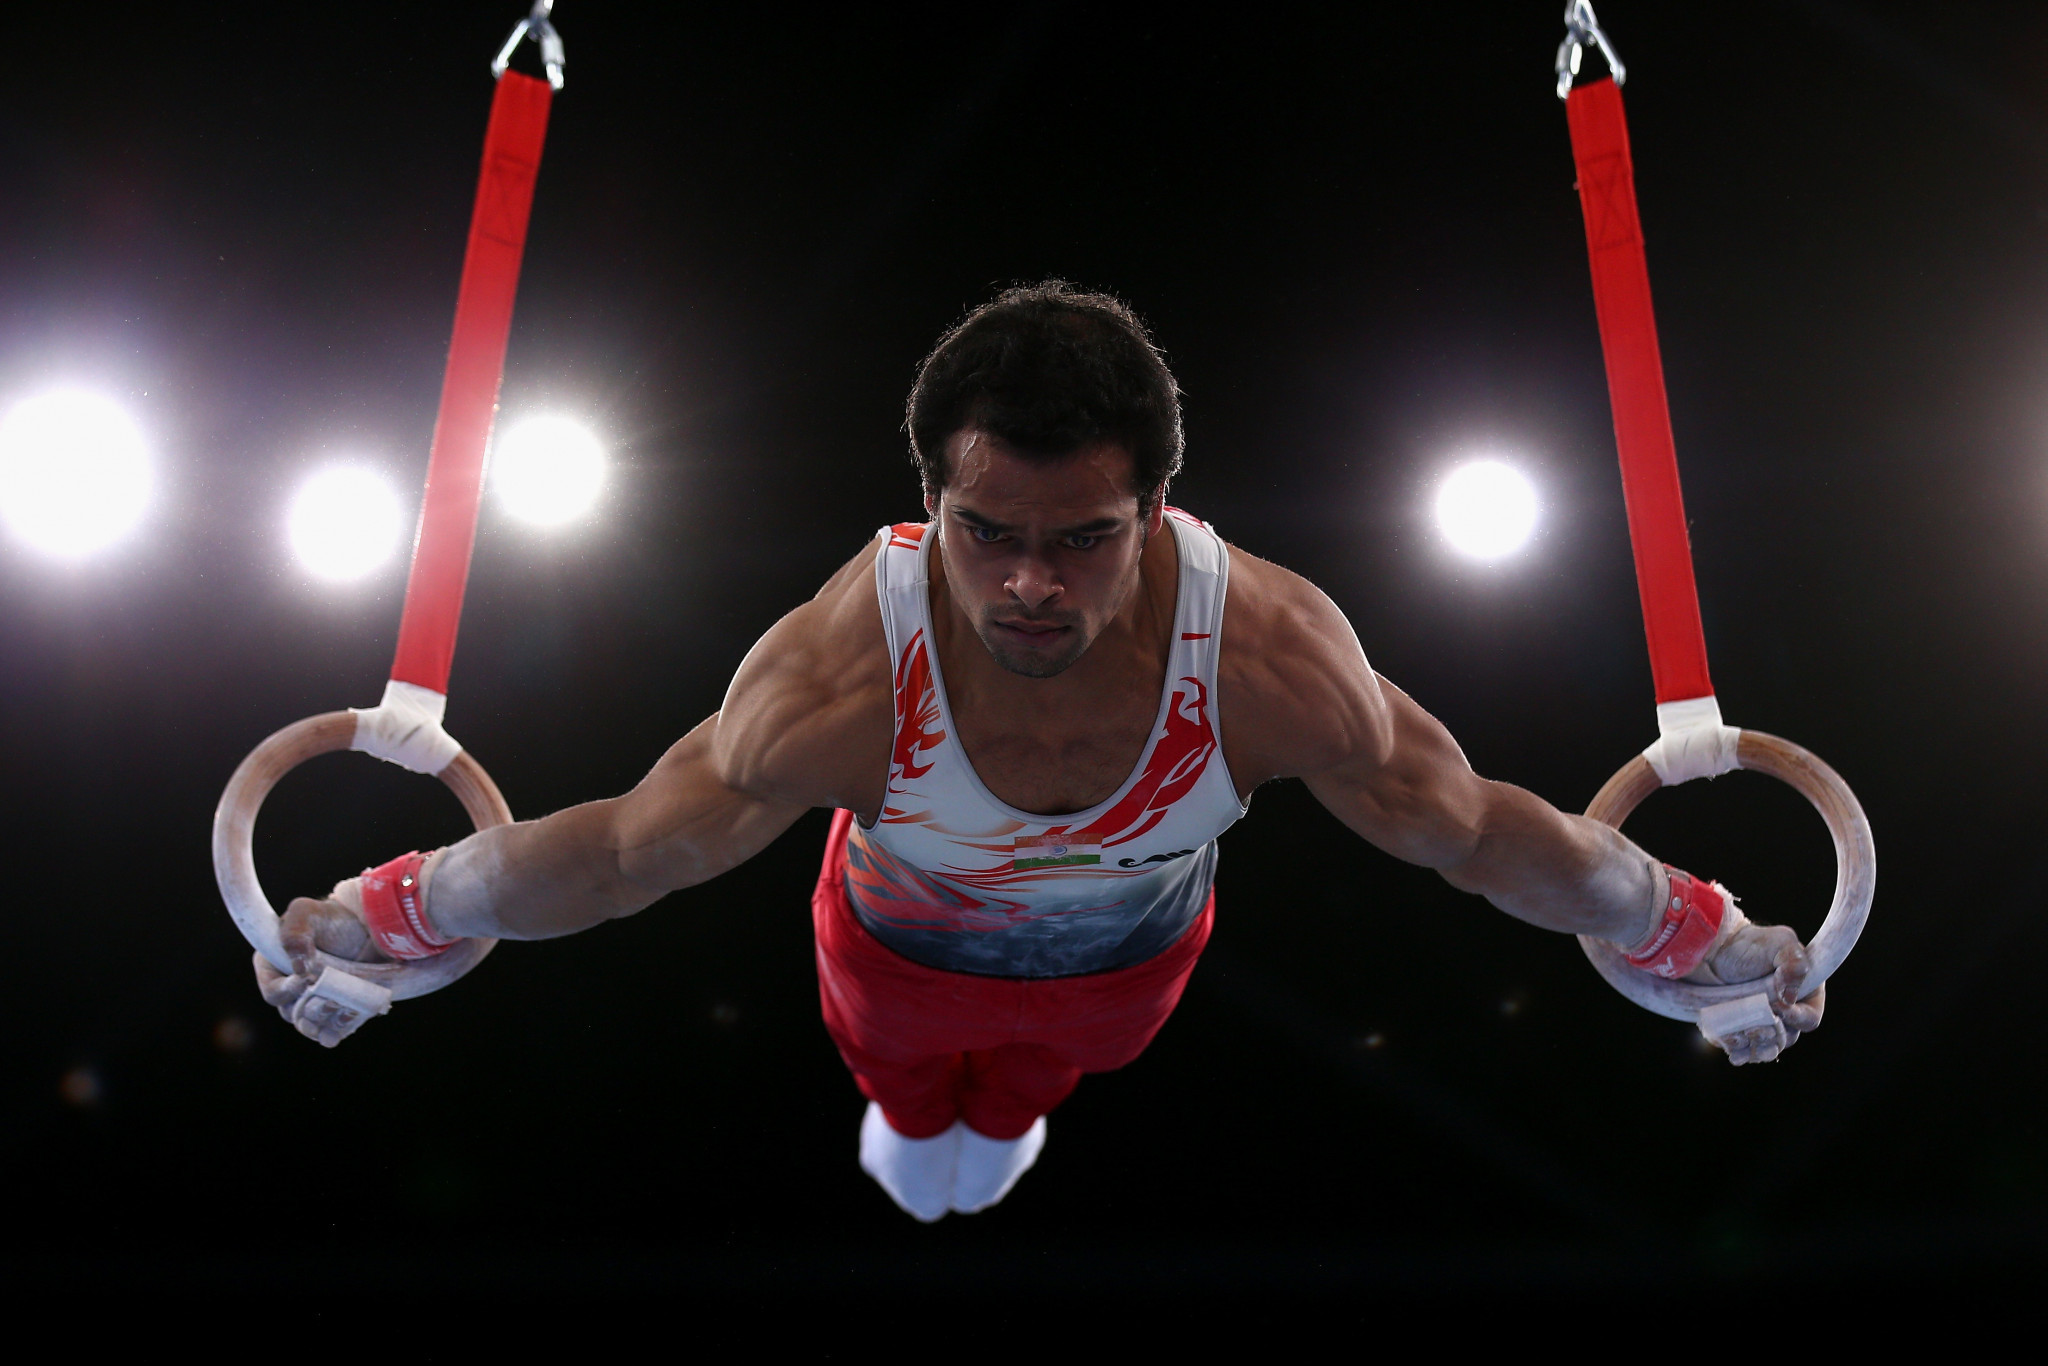 Indian gymnast sets sights on Paris 2024 following shoulder surgery